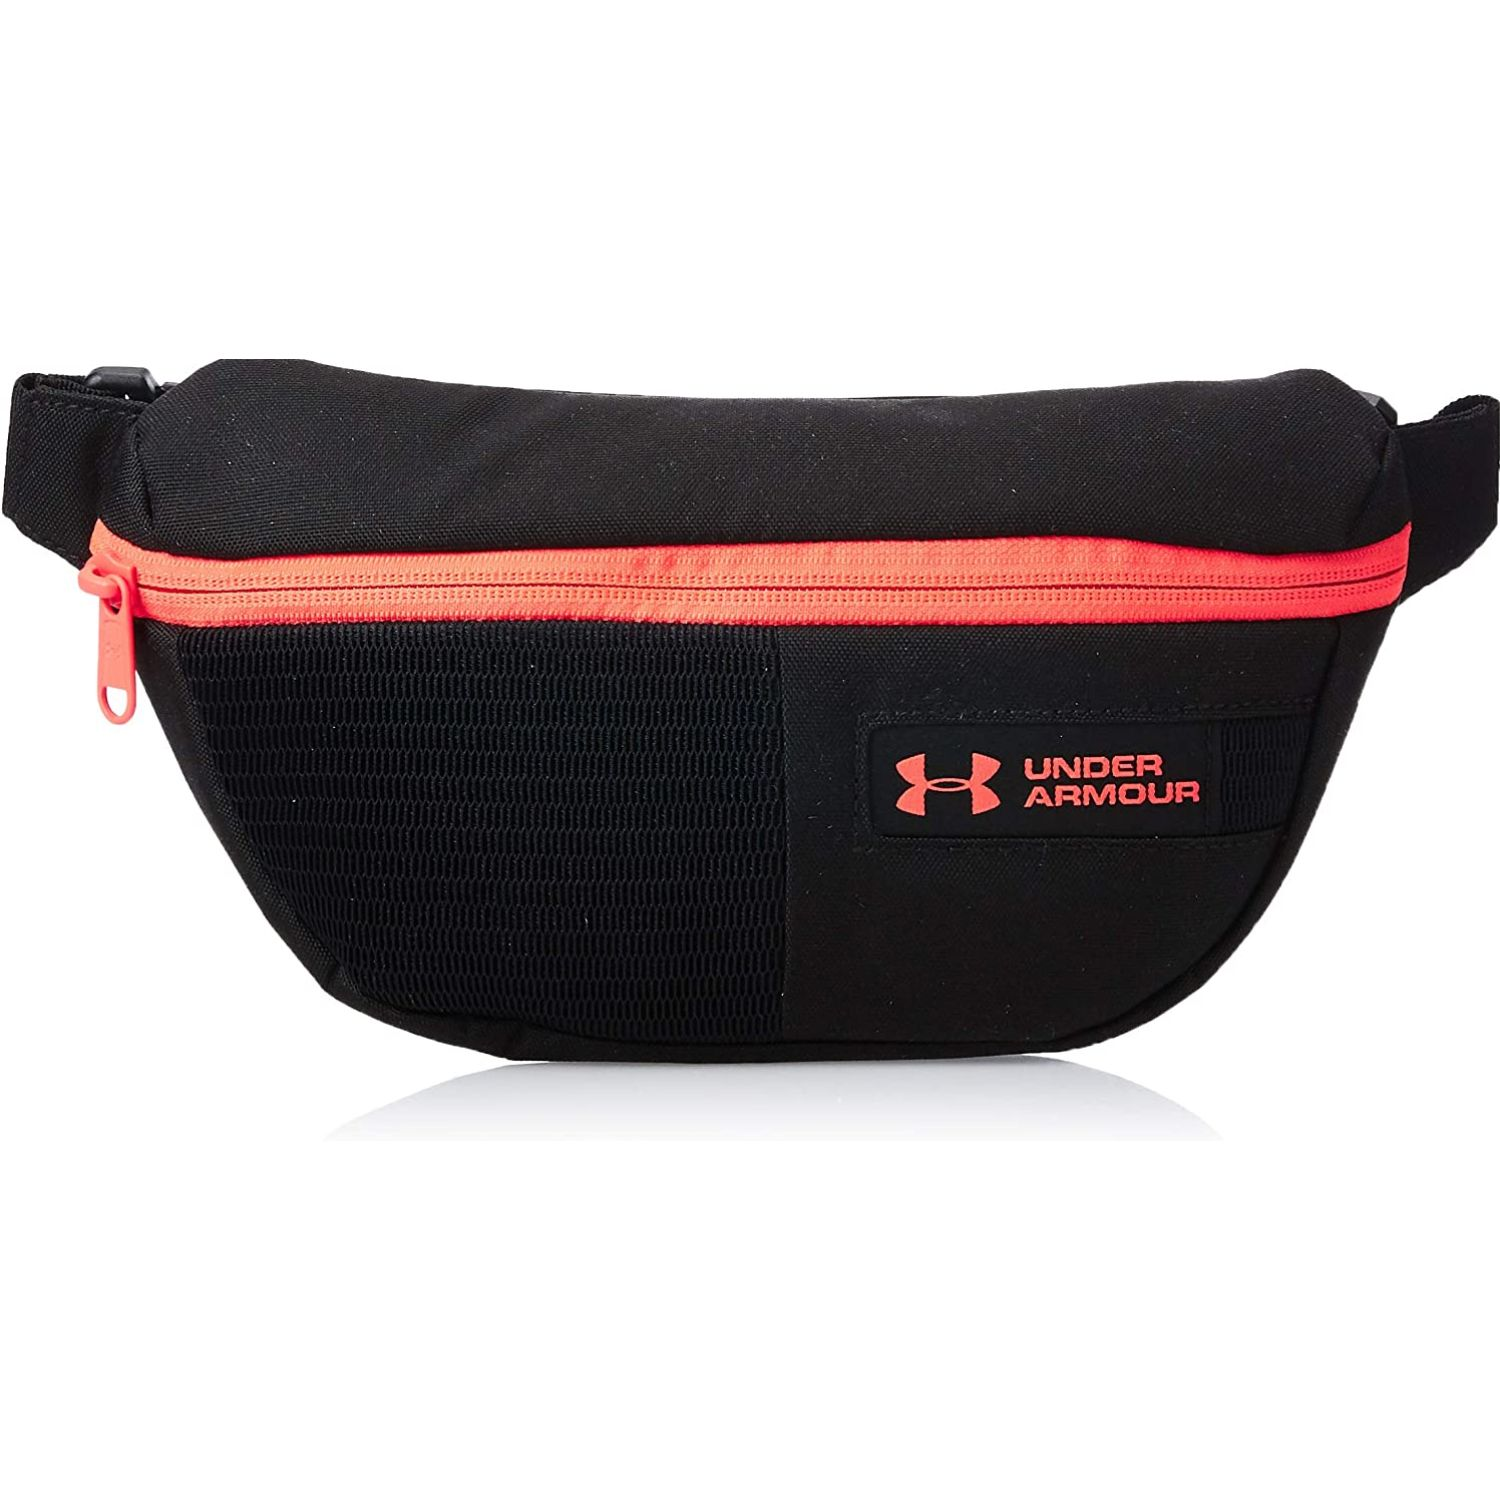 Under Armour Ua Waist Bag Negro Bolsos de gimnasio